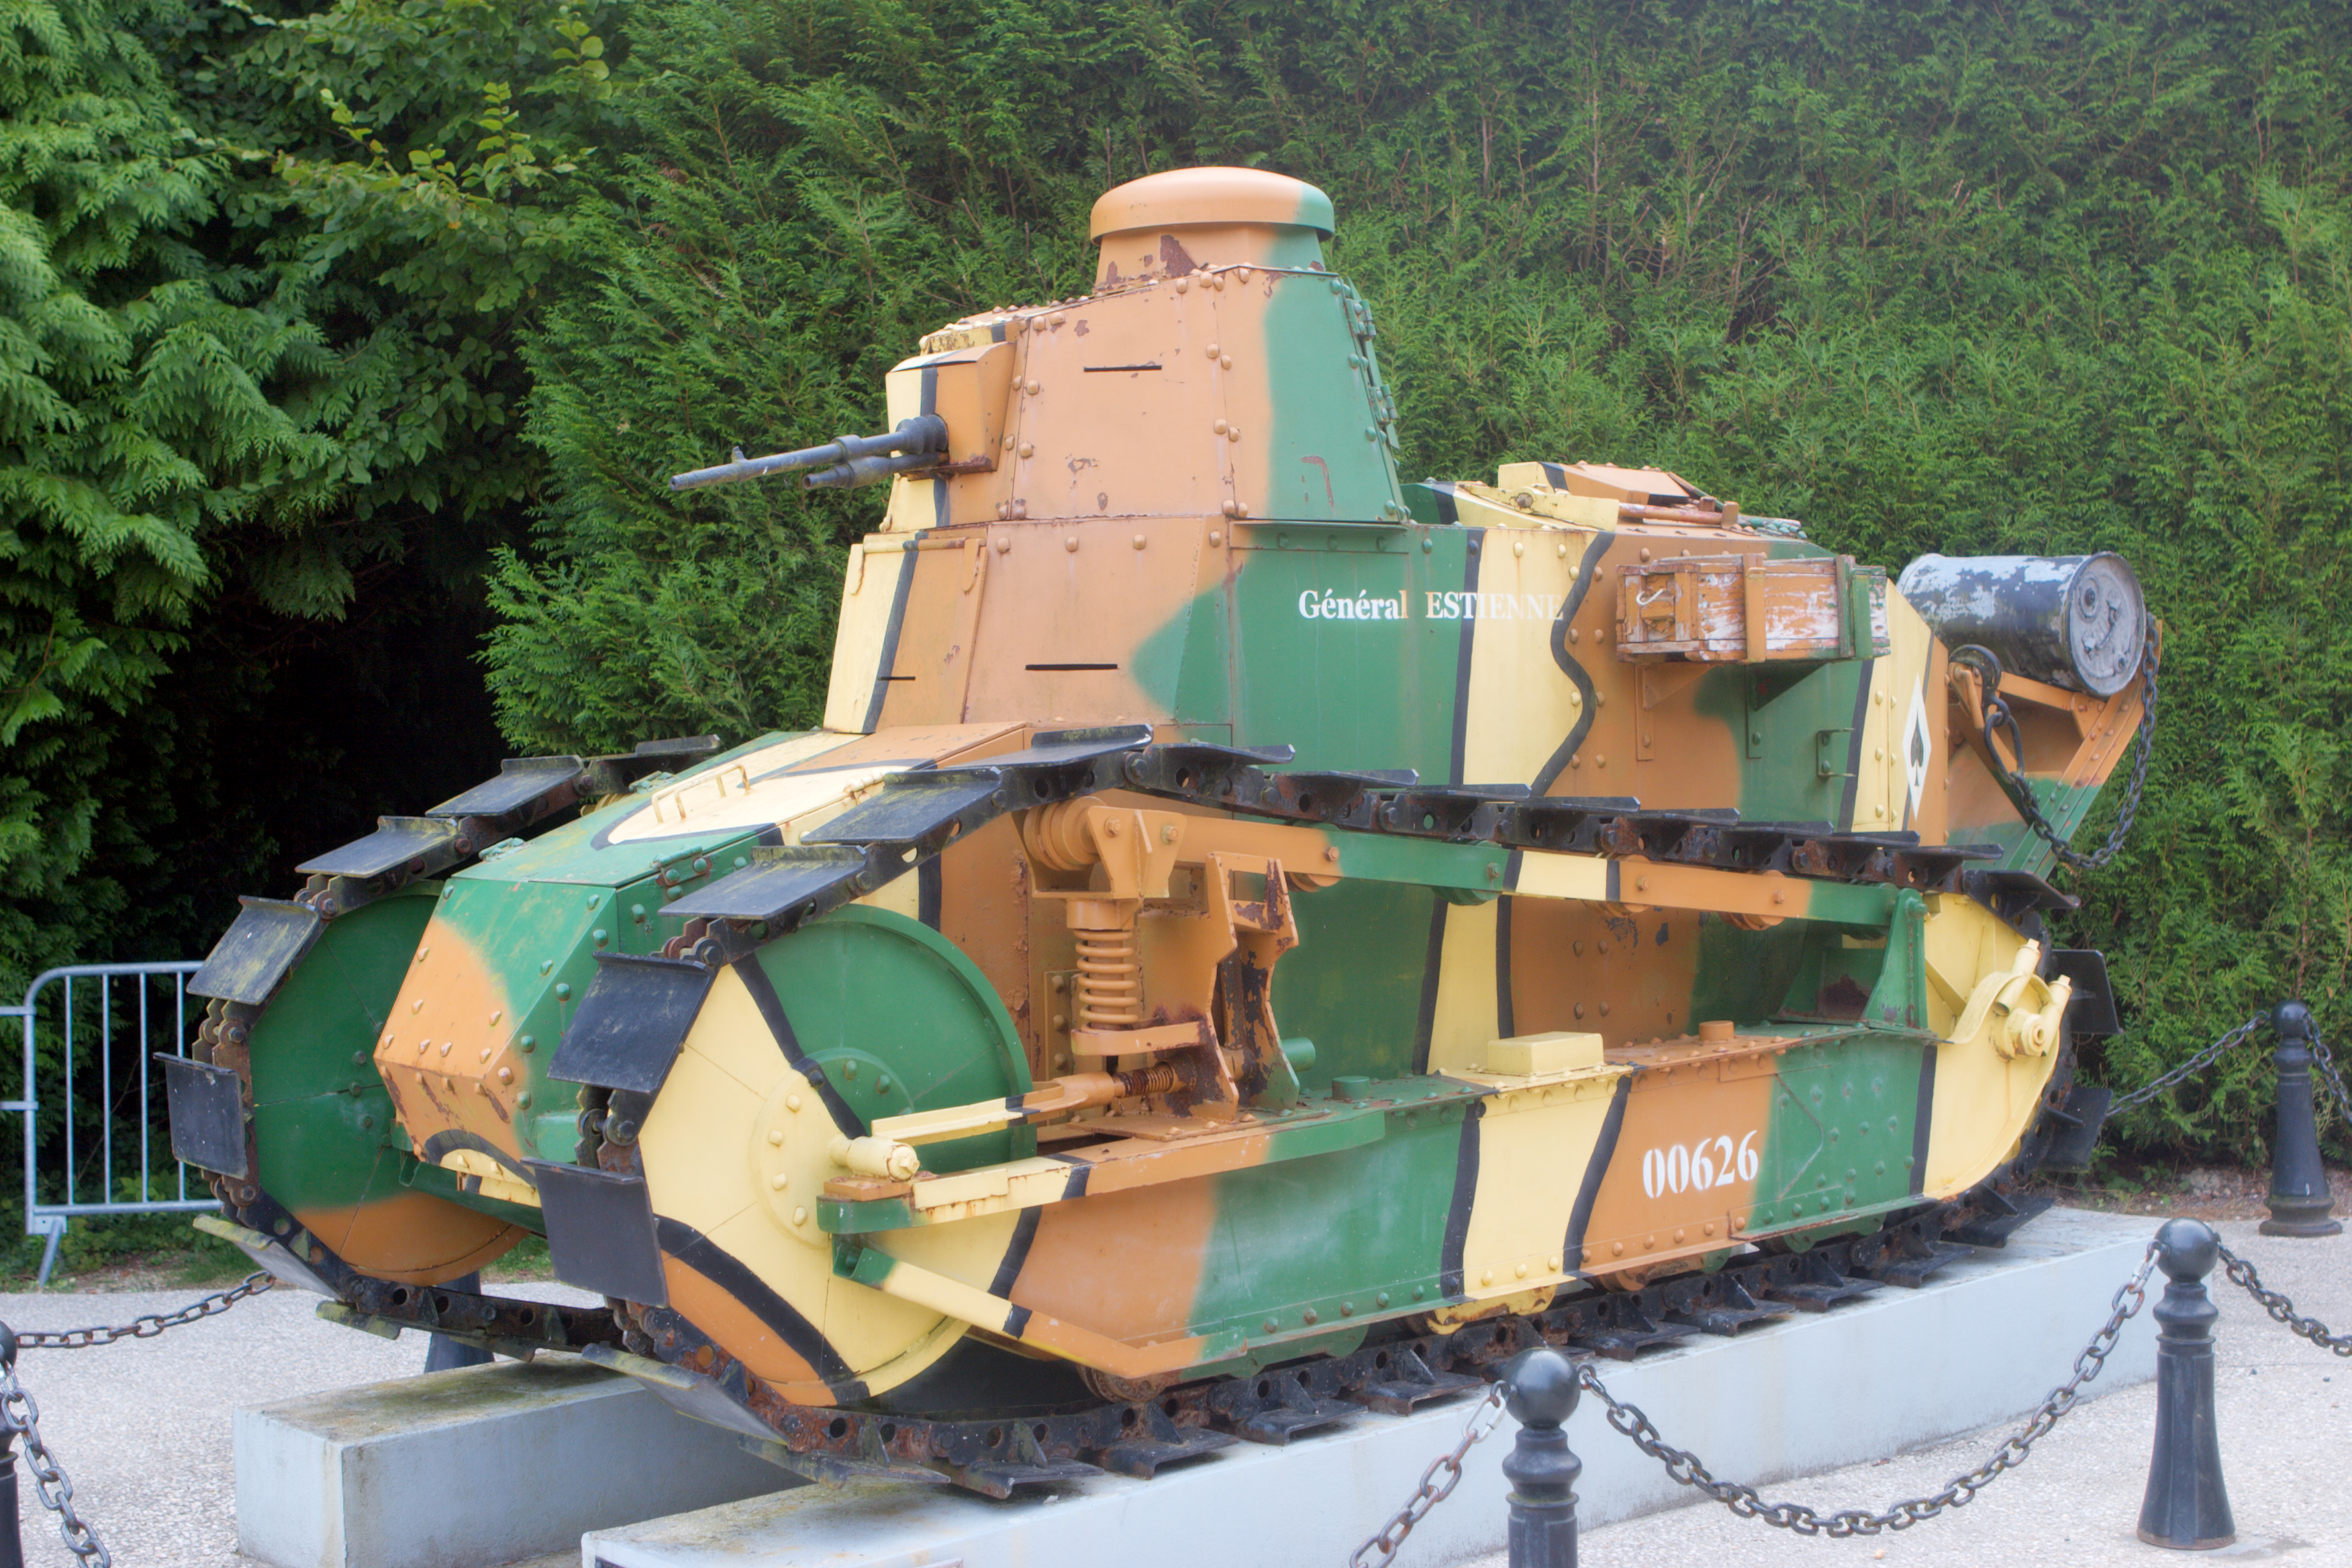 Renault ft17 photo - 2